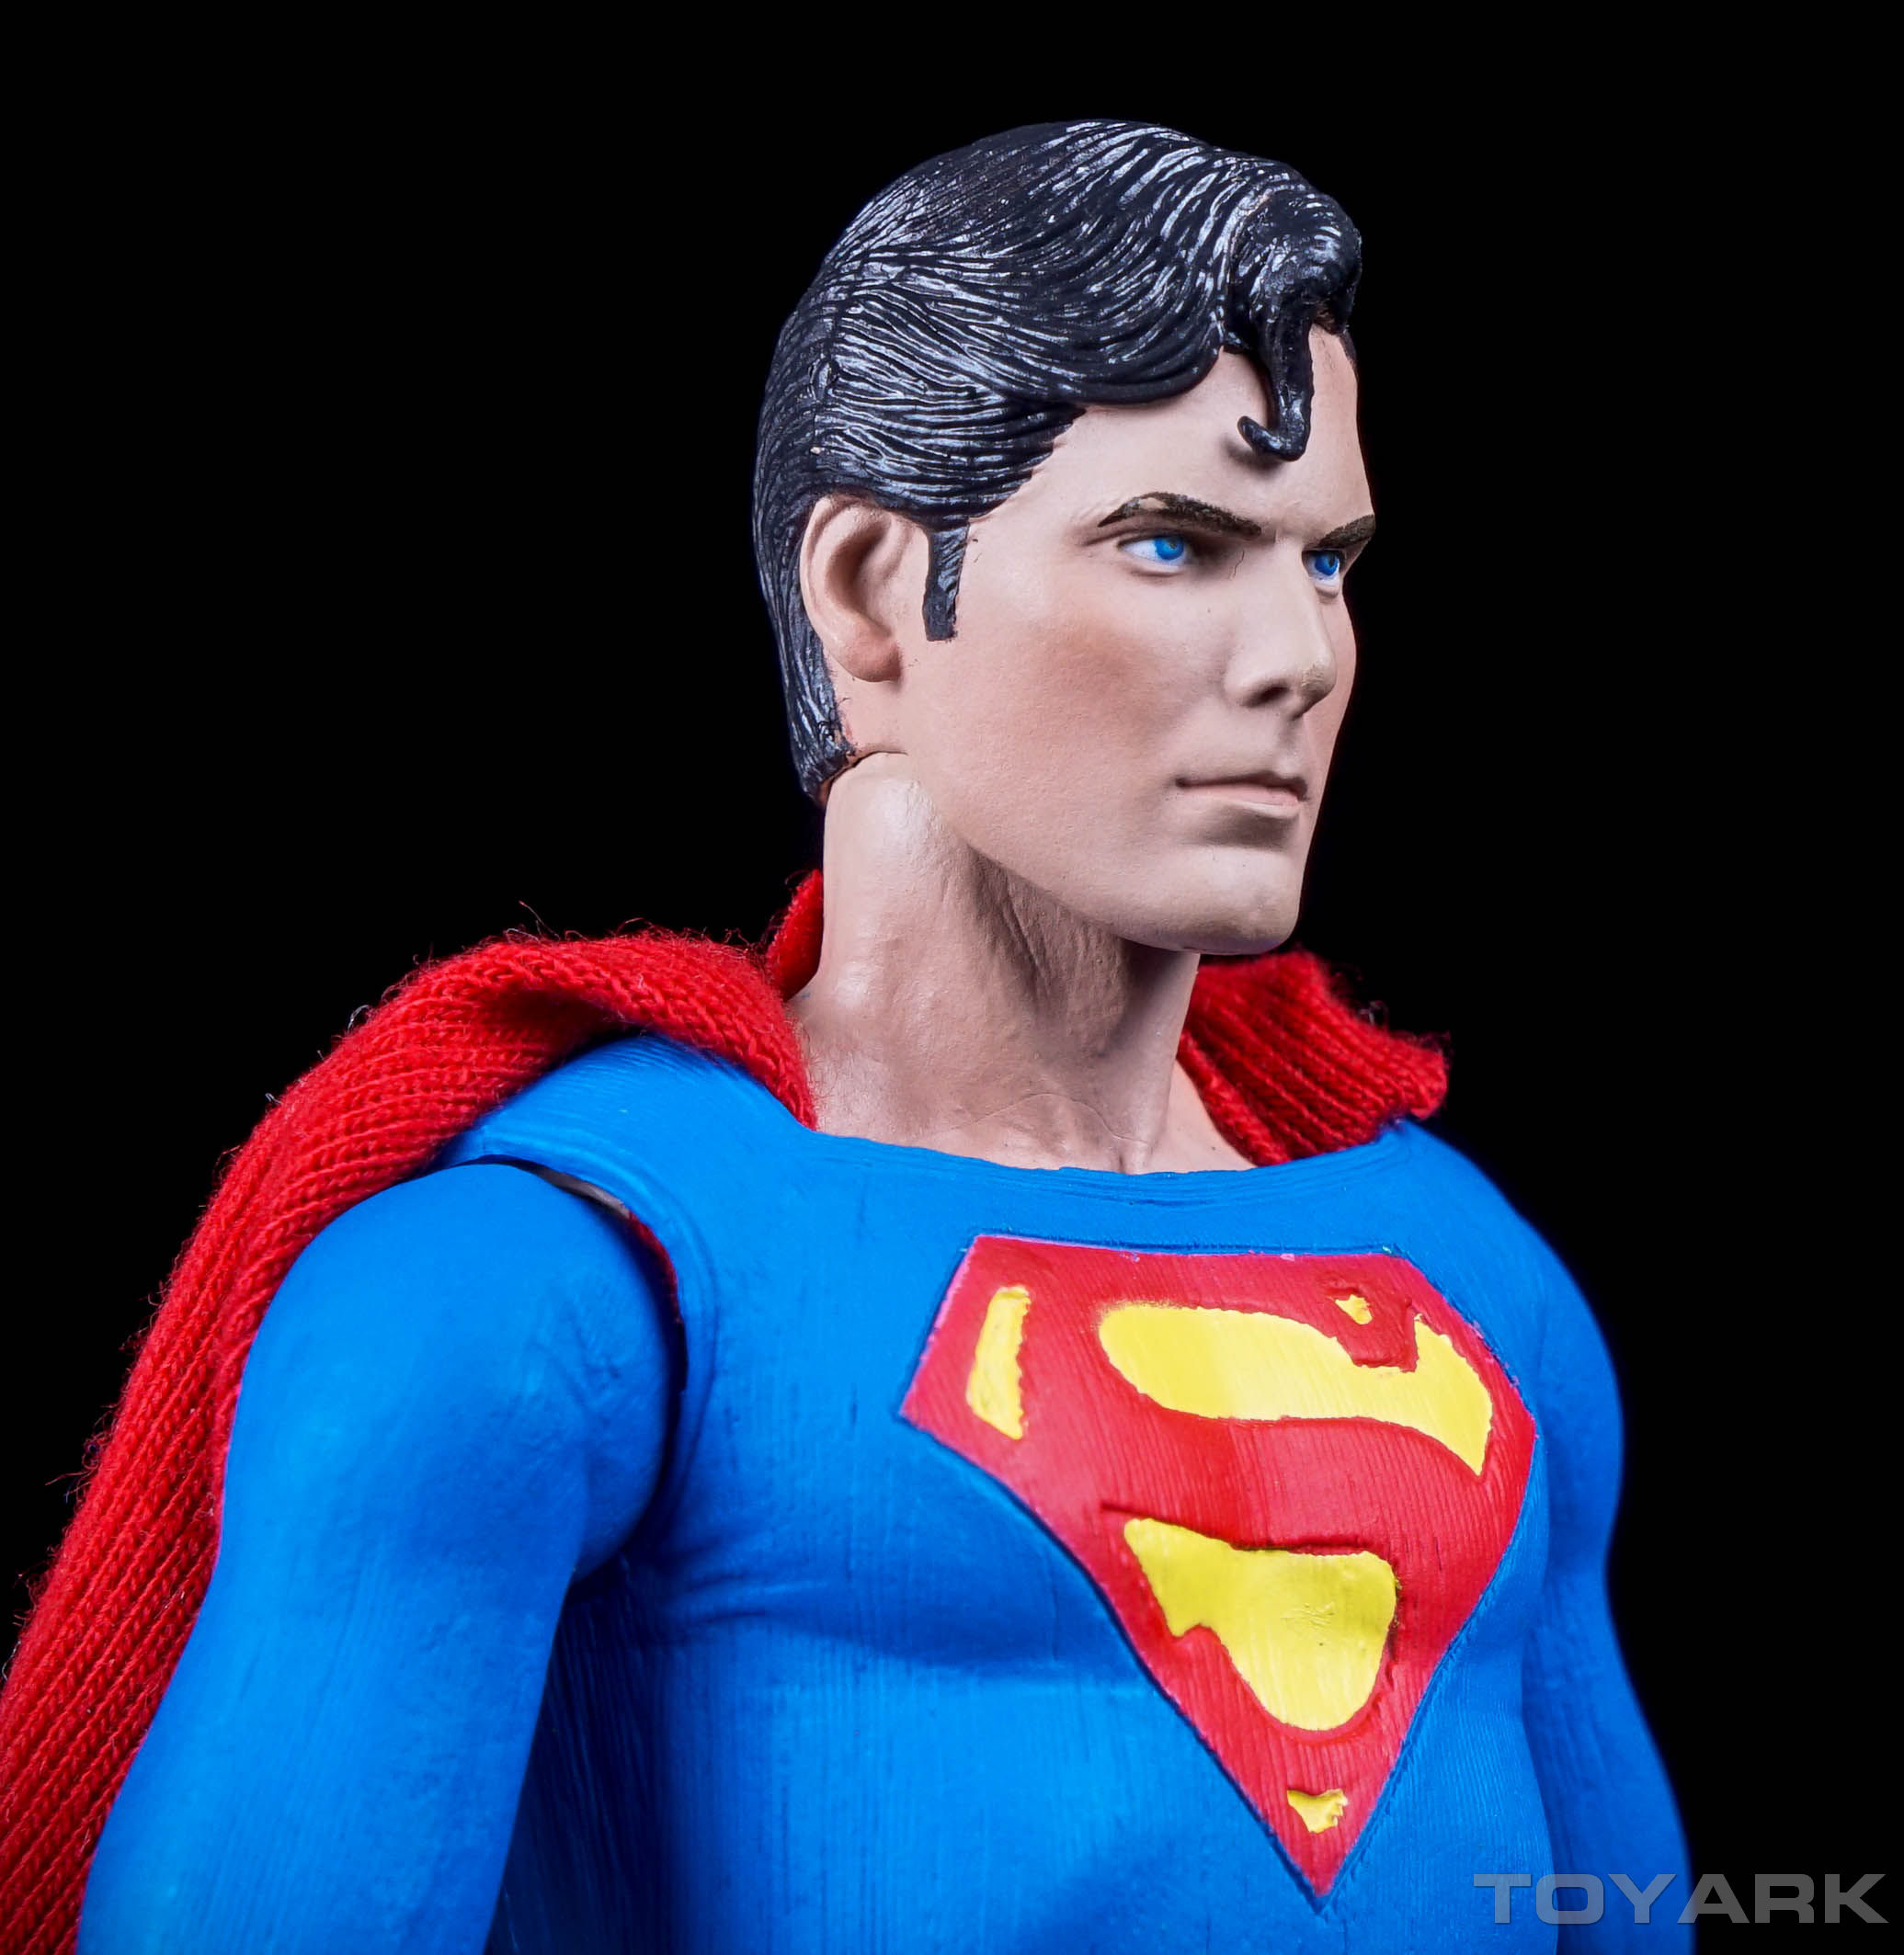 http://news.toyark.com/wp-content/uploads/sites/4/2015/11/NECA-7-Inch-Superman-020.jpg